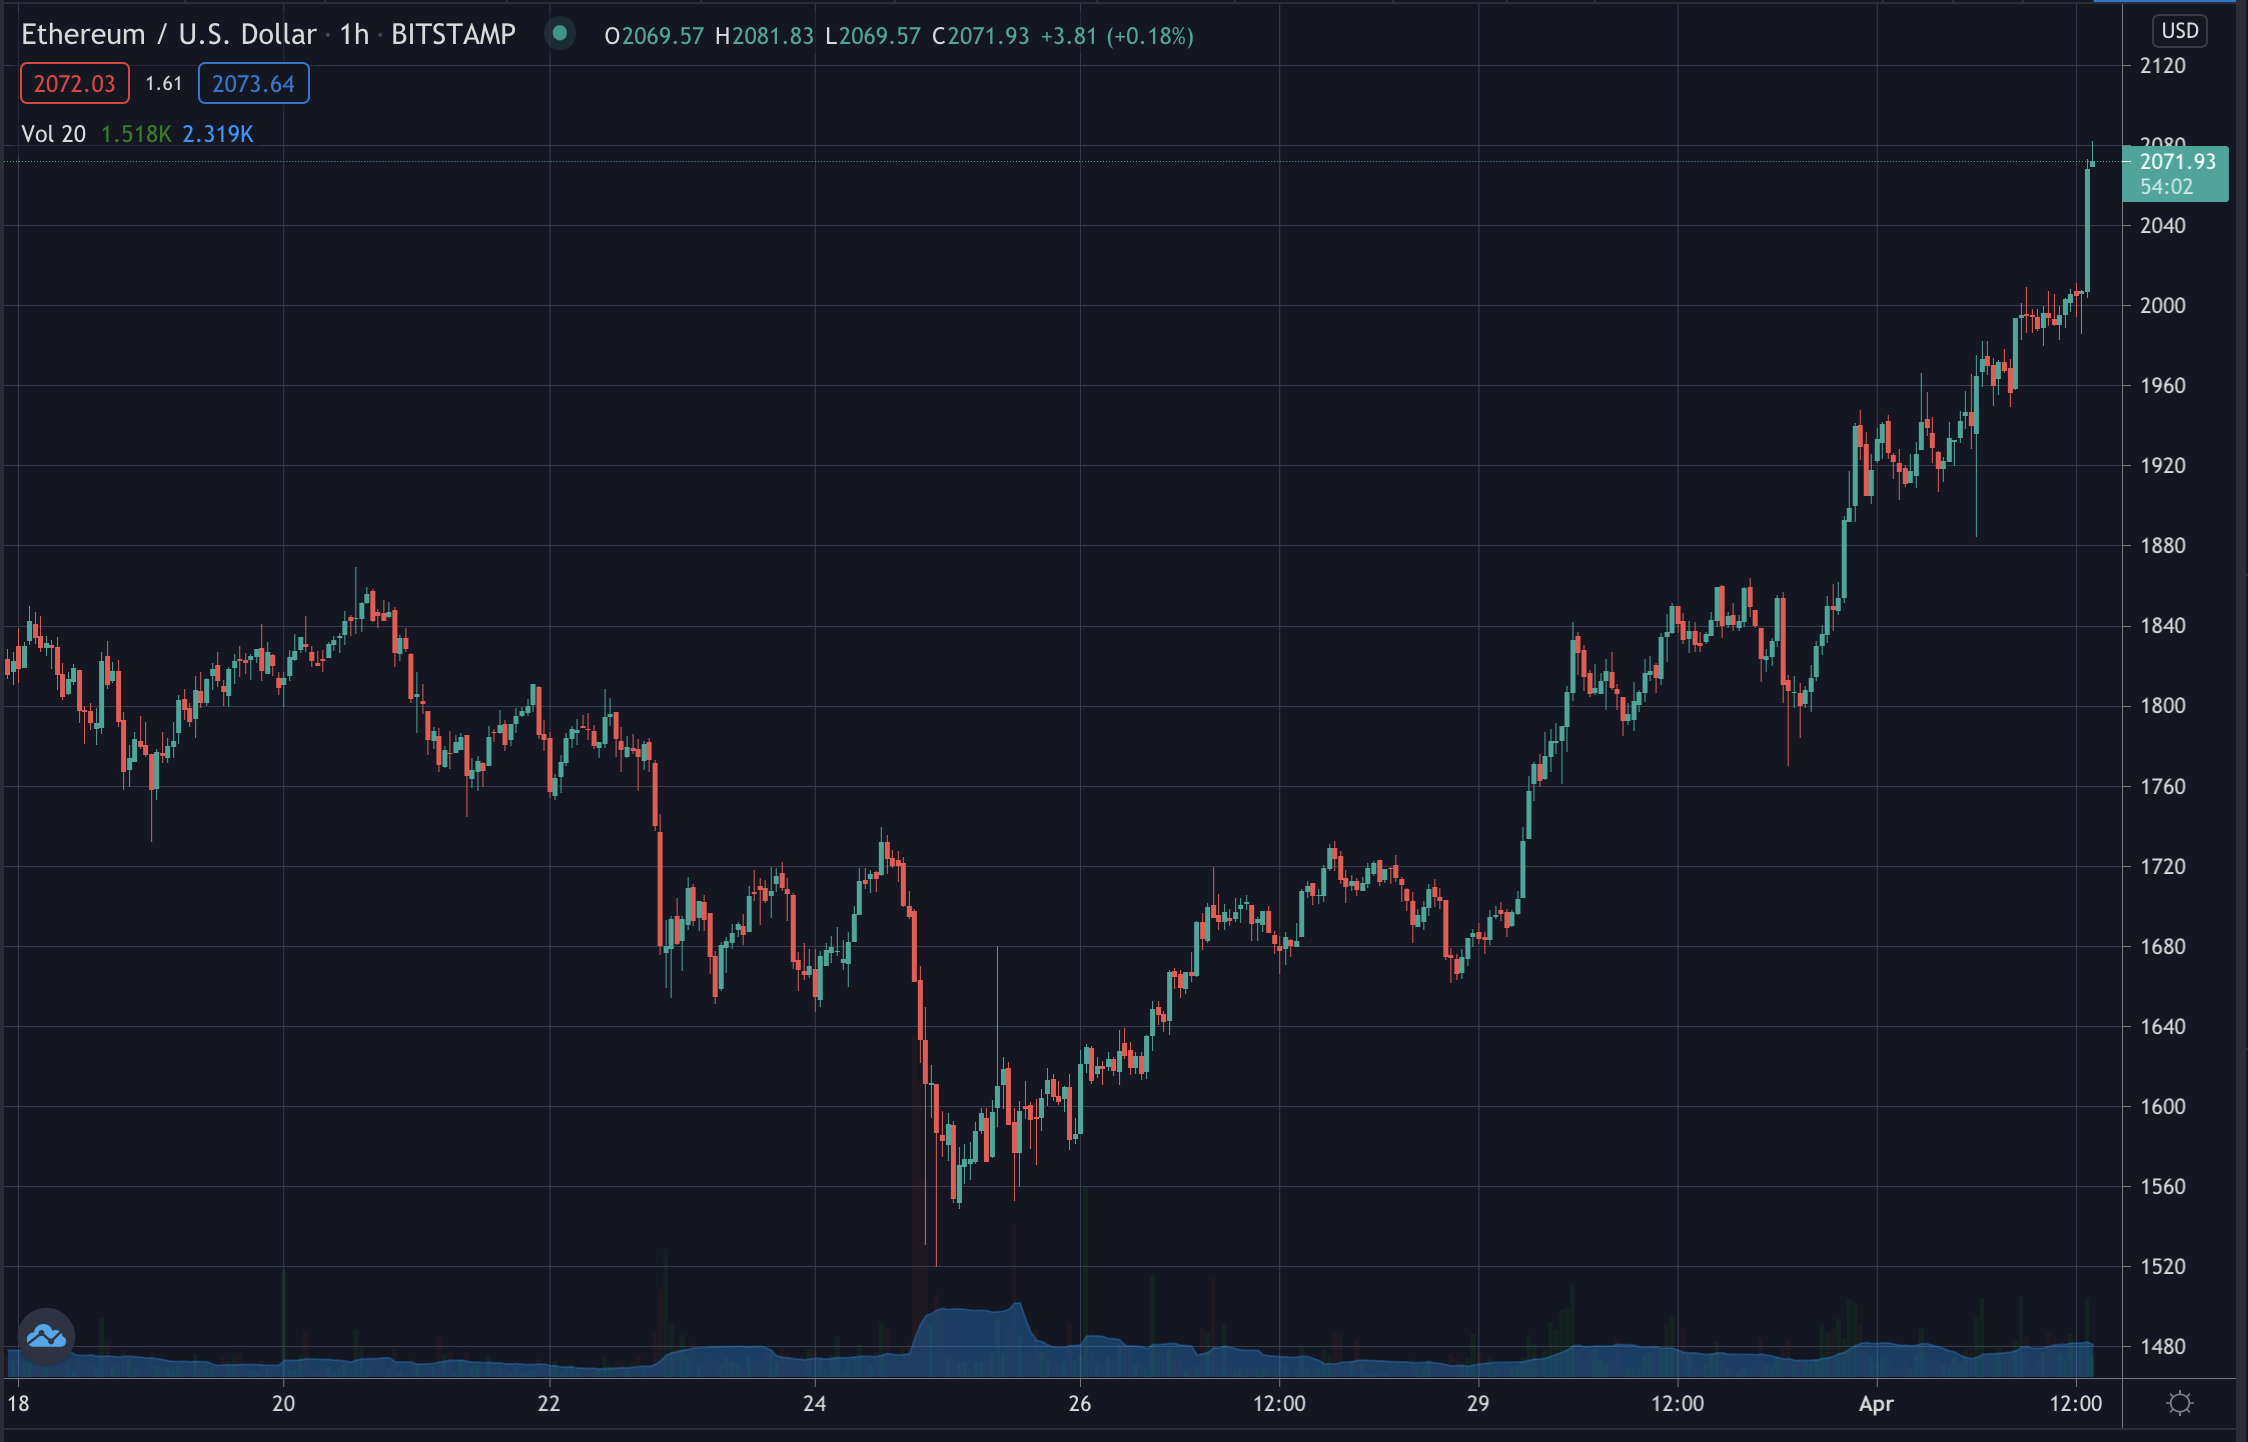 Ethereum reaches new all time high, April 2021